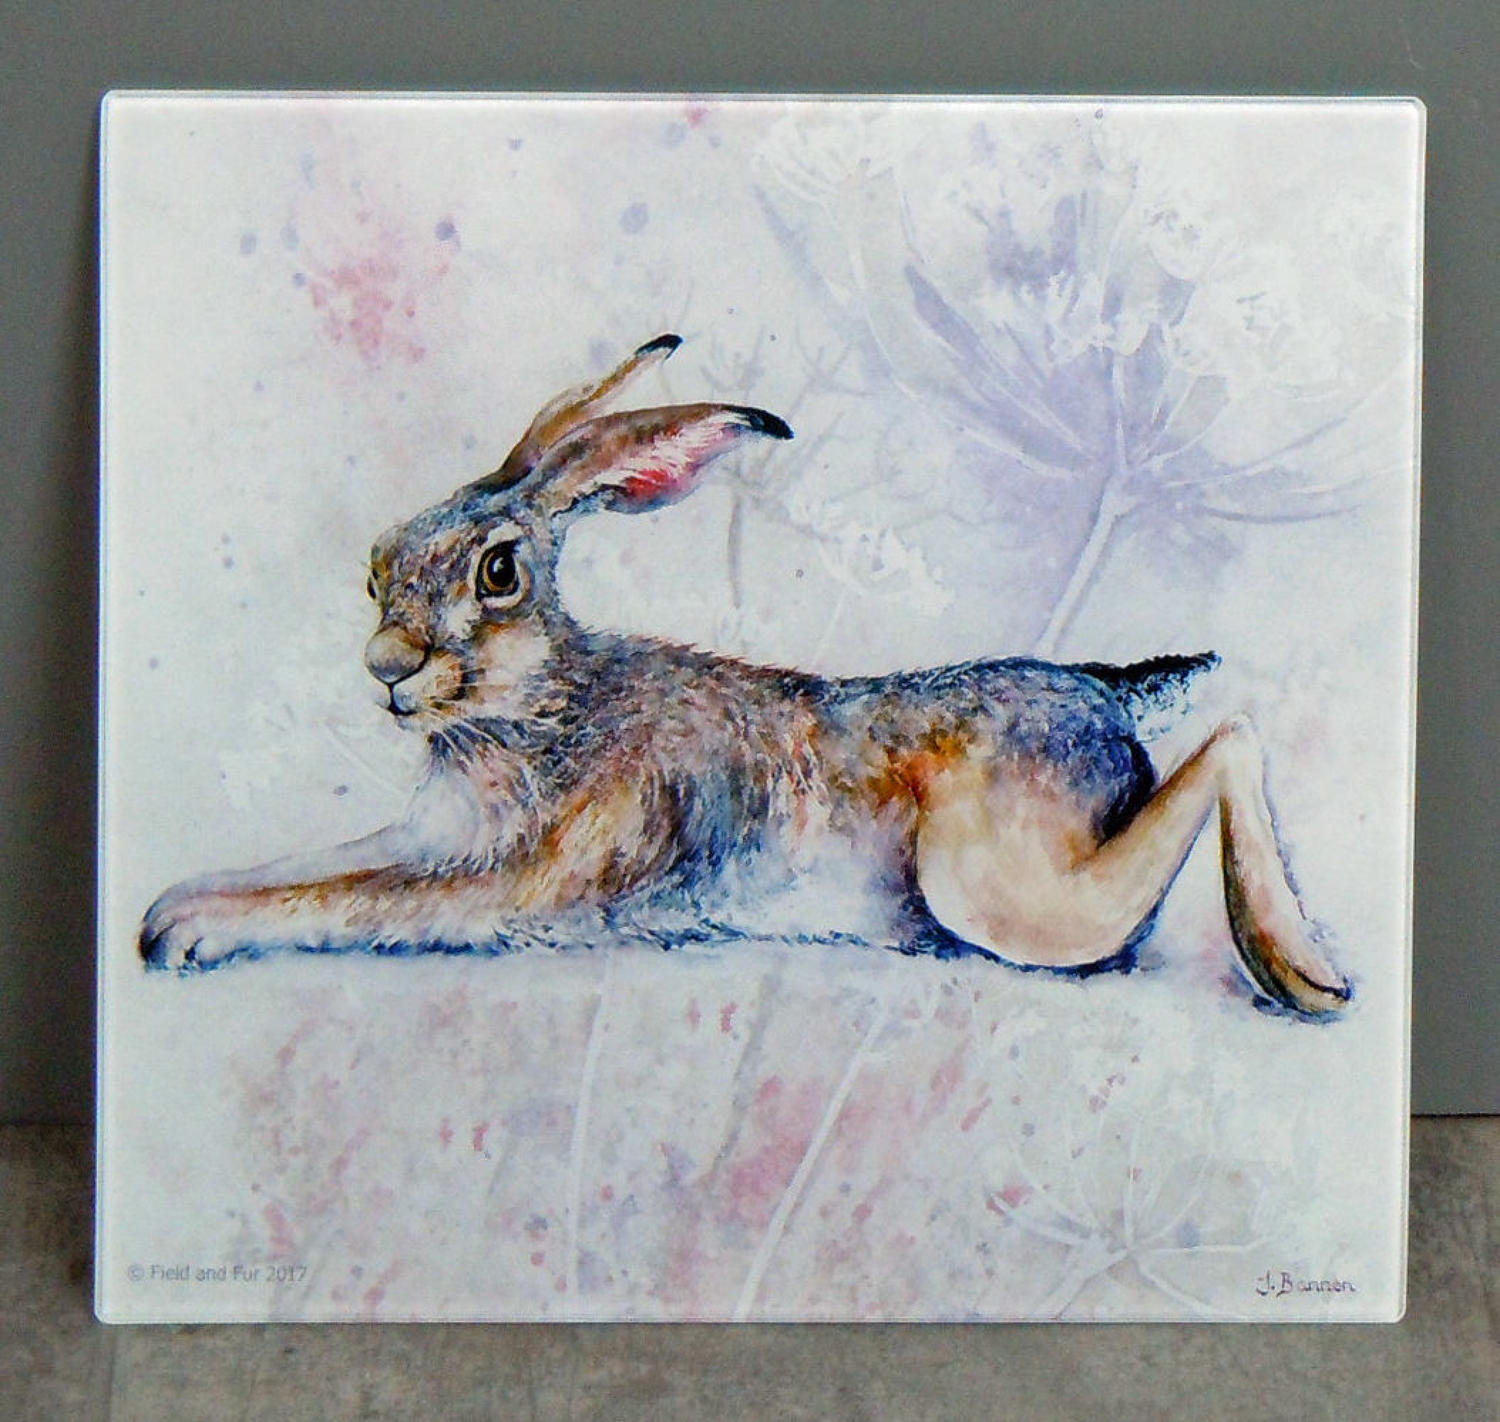 Glass Hare chopping board, worktop saver